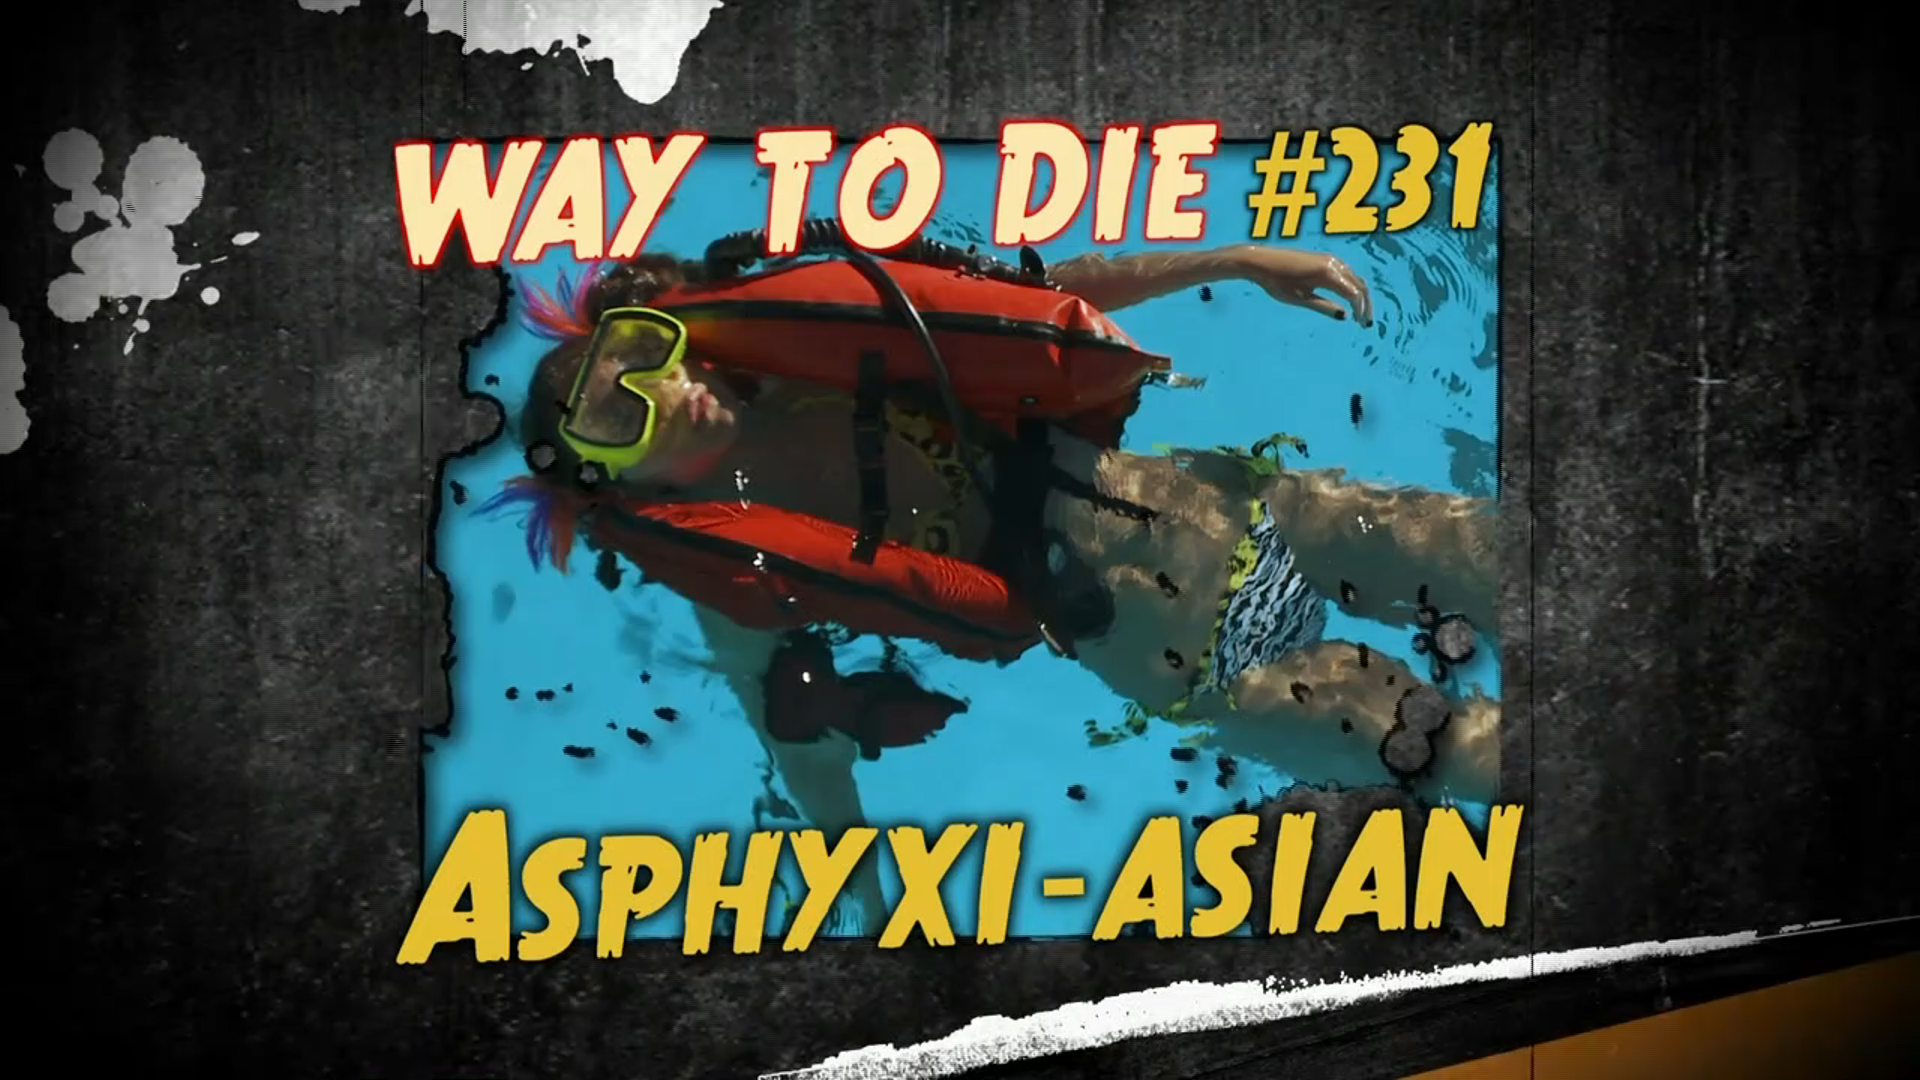 Asphyxi-Asian